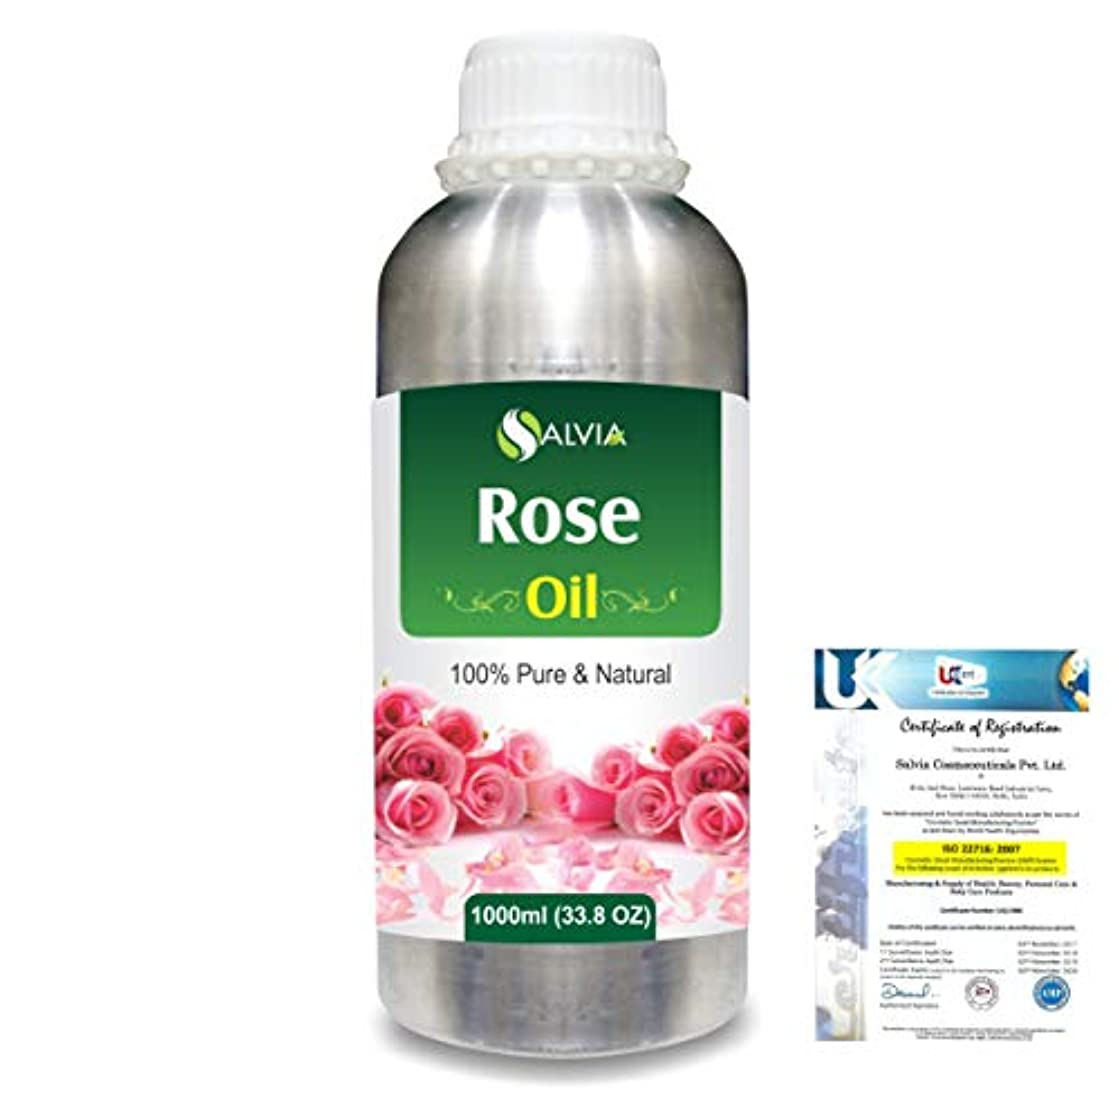 発送驚くべき雄弁なRose (Rosa Damacenia) 100% Natural Pure Essential Oil 1000ml/33.8fl.oz.